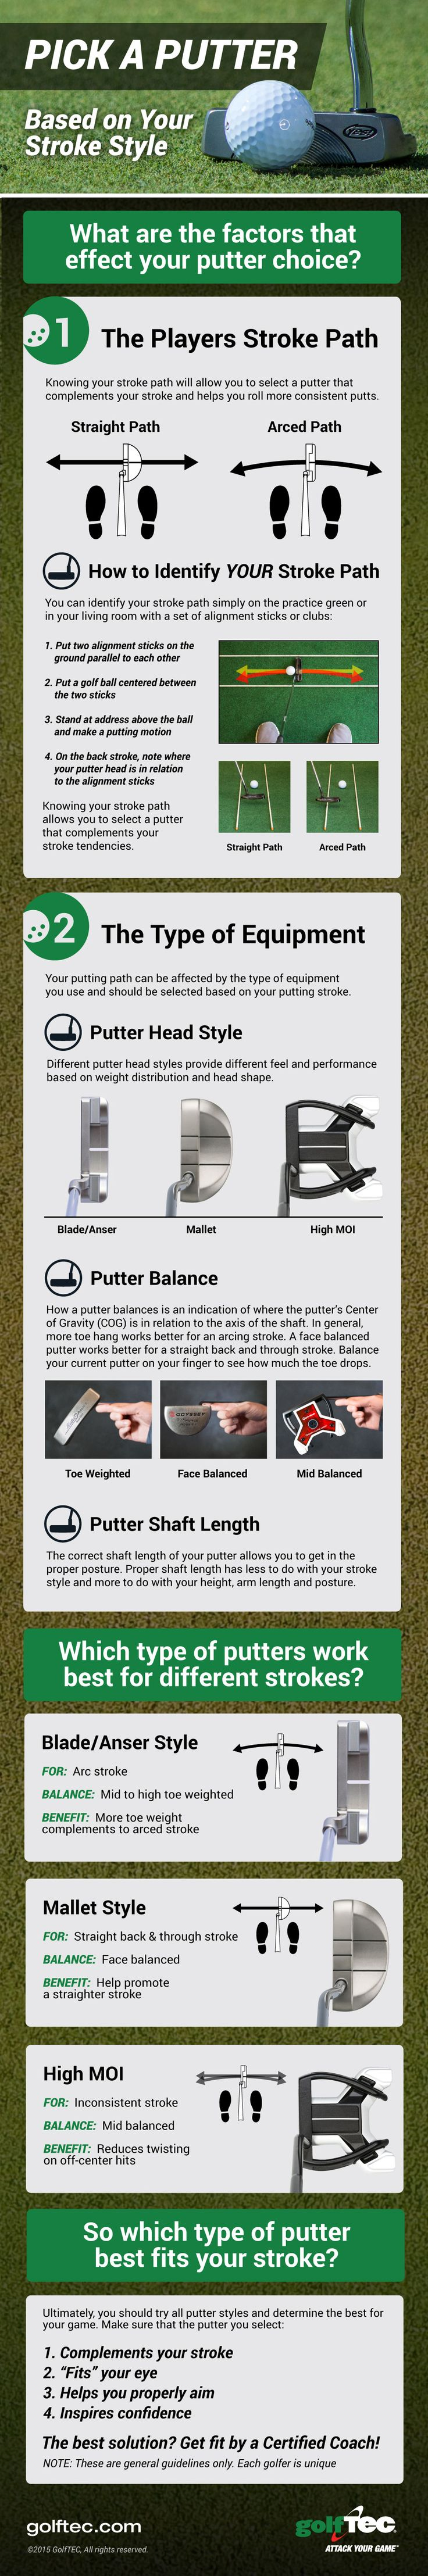 Find the Right Putter Style Infographic | #repin by @lorisgolfshoppe